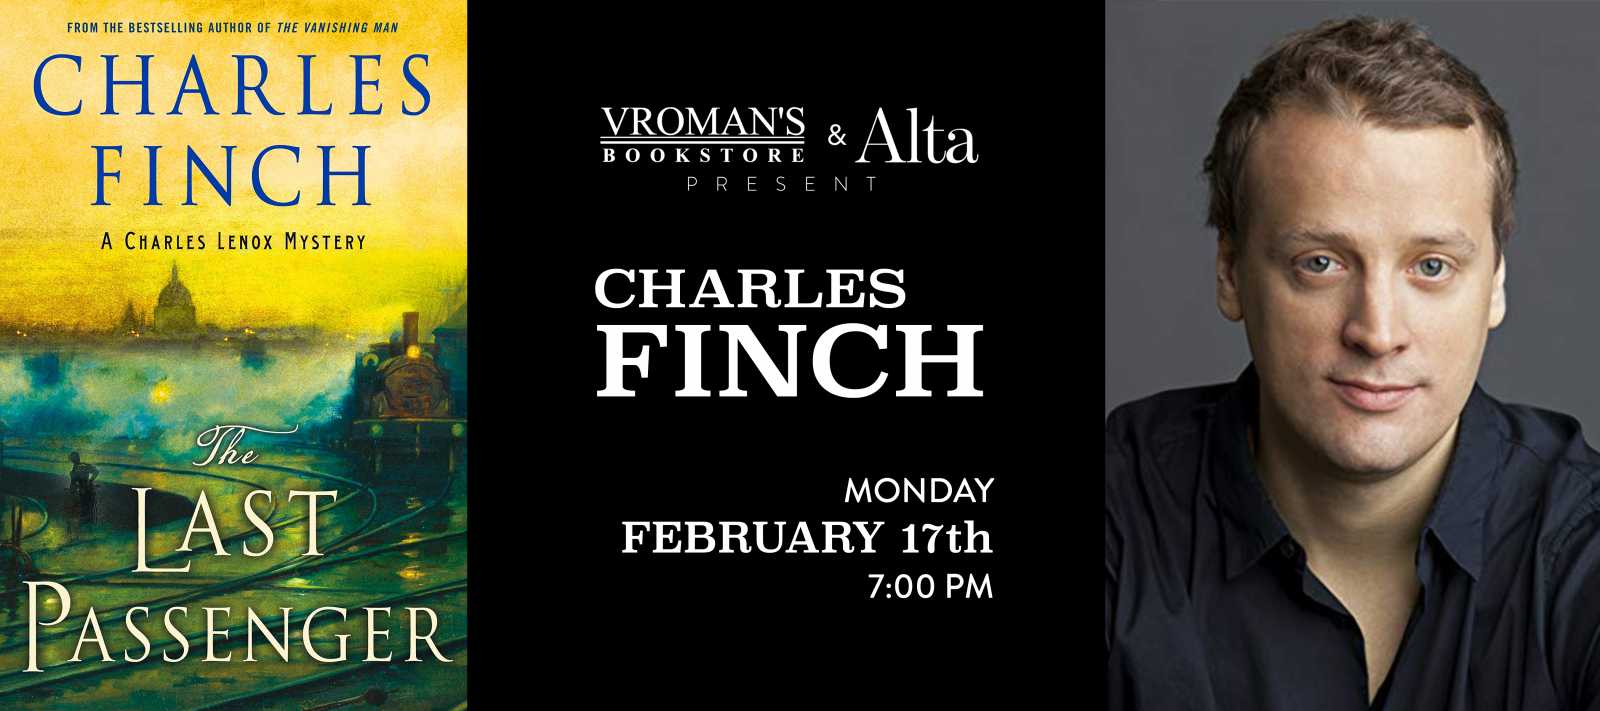 Charles Finch book signing on Monday, February 17, at 7pm